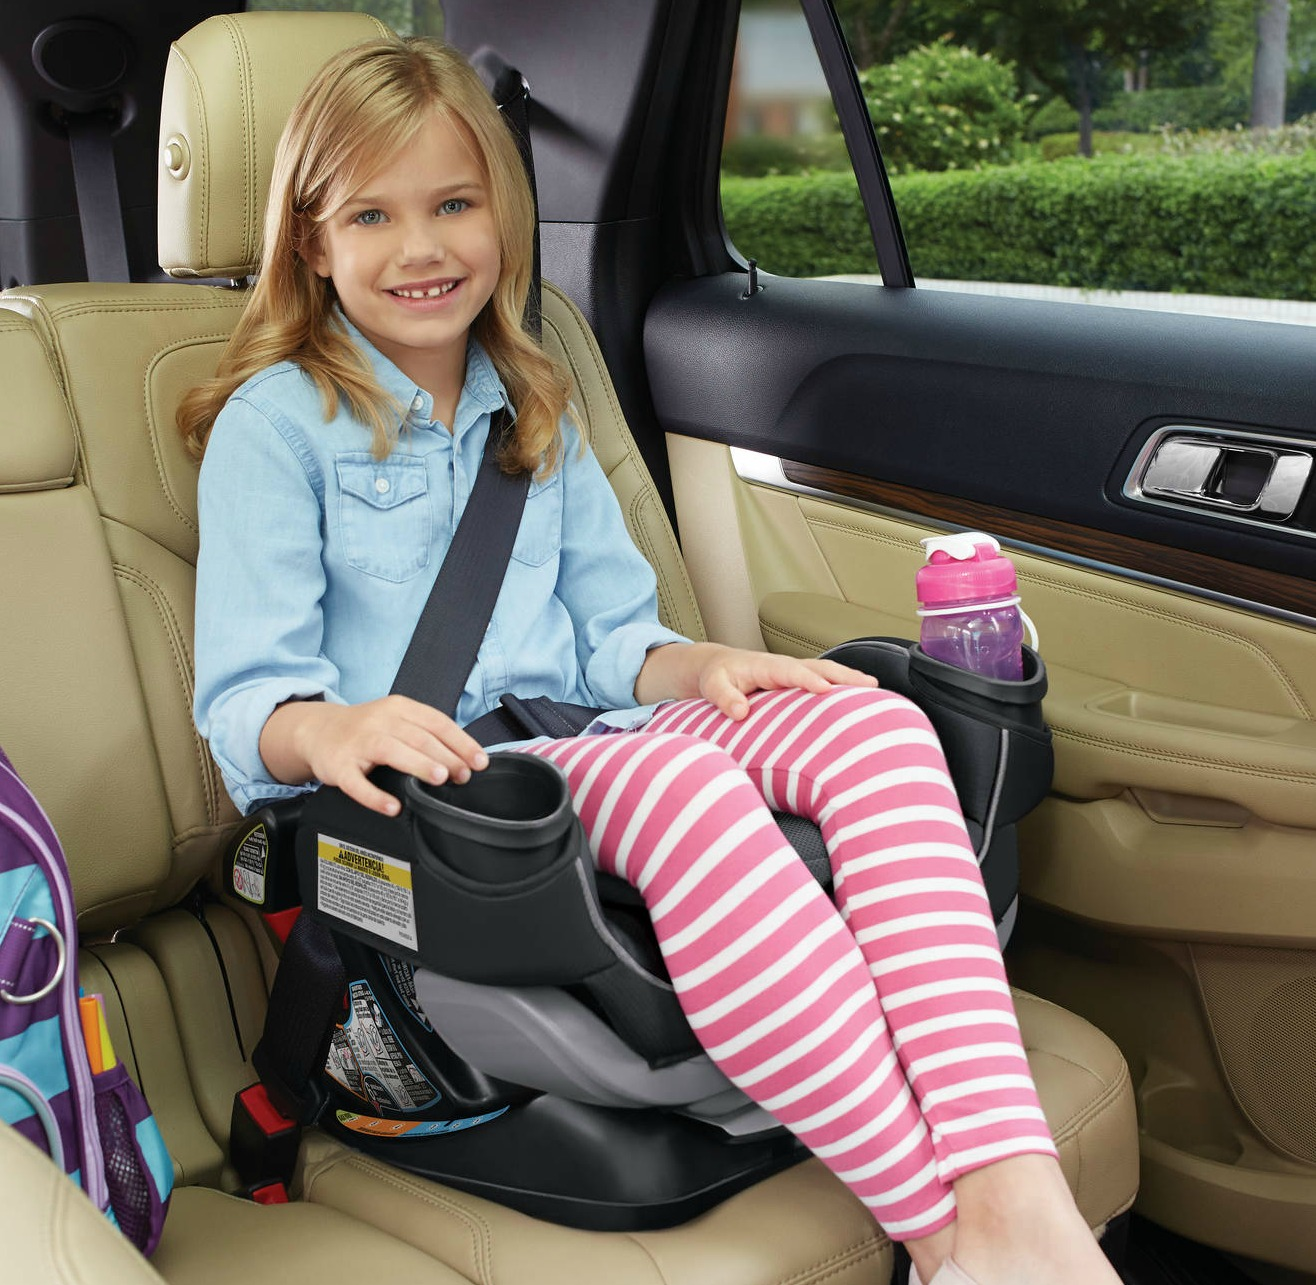 This 4 In 1 Car Seat Can Be Used From Infancy All The Way Up To 10 Years Of Age It Includes A Booster Mode Which Grows With Your Child 120 Pounds As